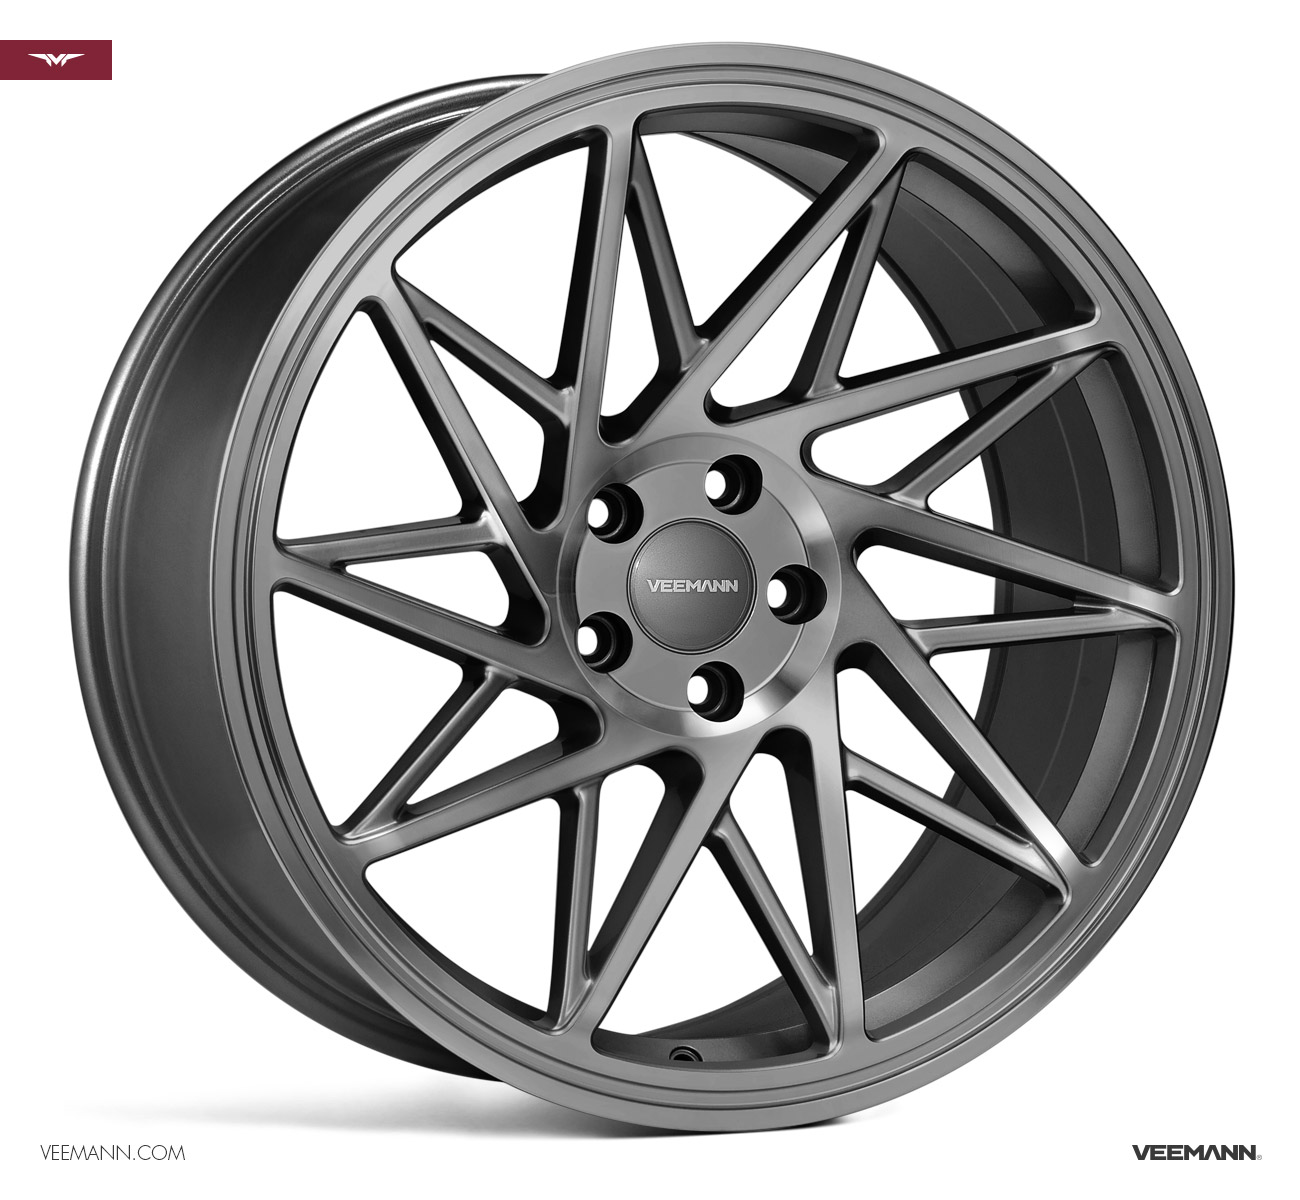 "NEW 19"" VEEMANN V-FS35 ALLOY WHEELS IN GLOSS GRAPHITE WITH WIDER 9.5"" REARS"